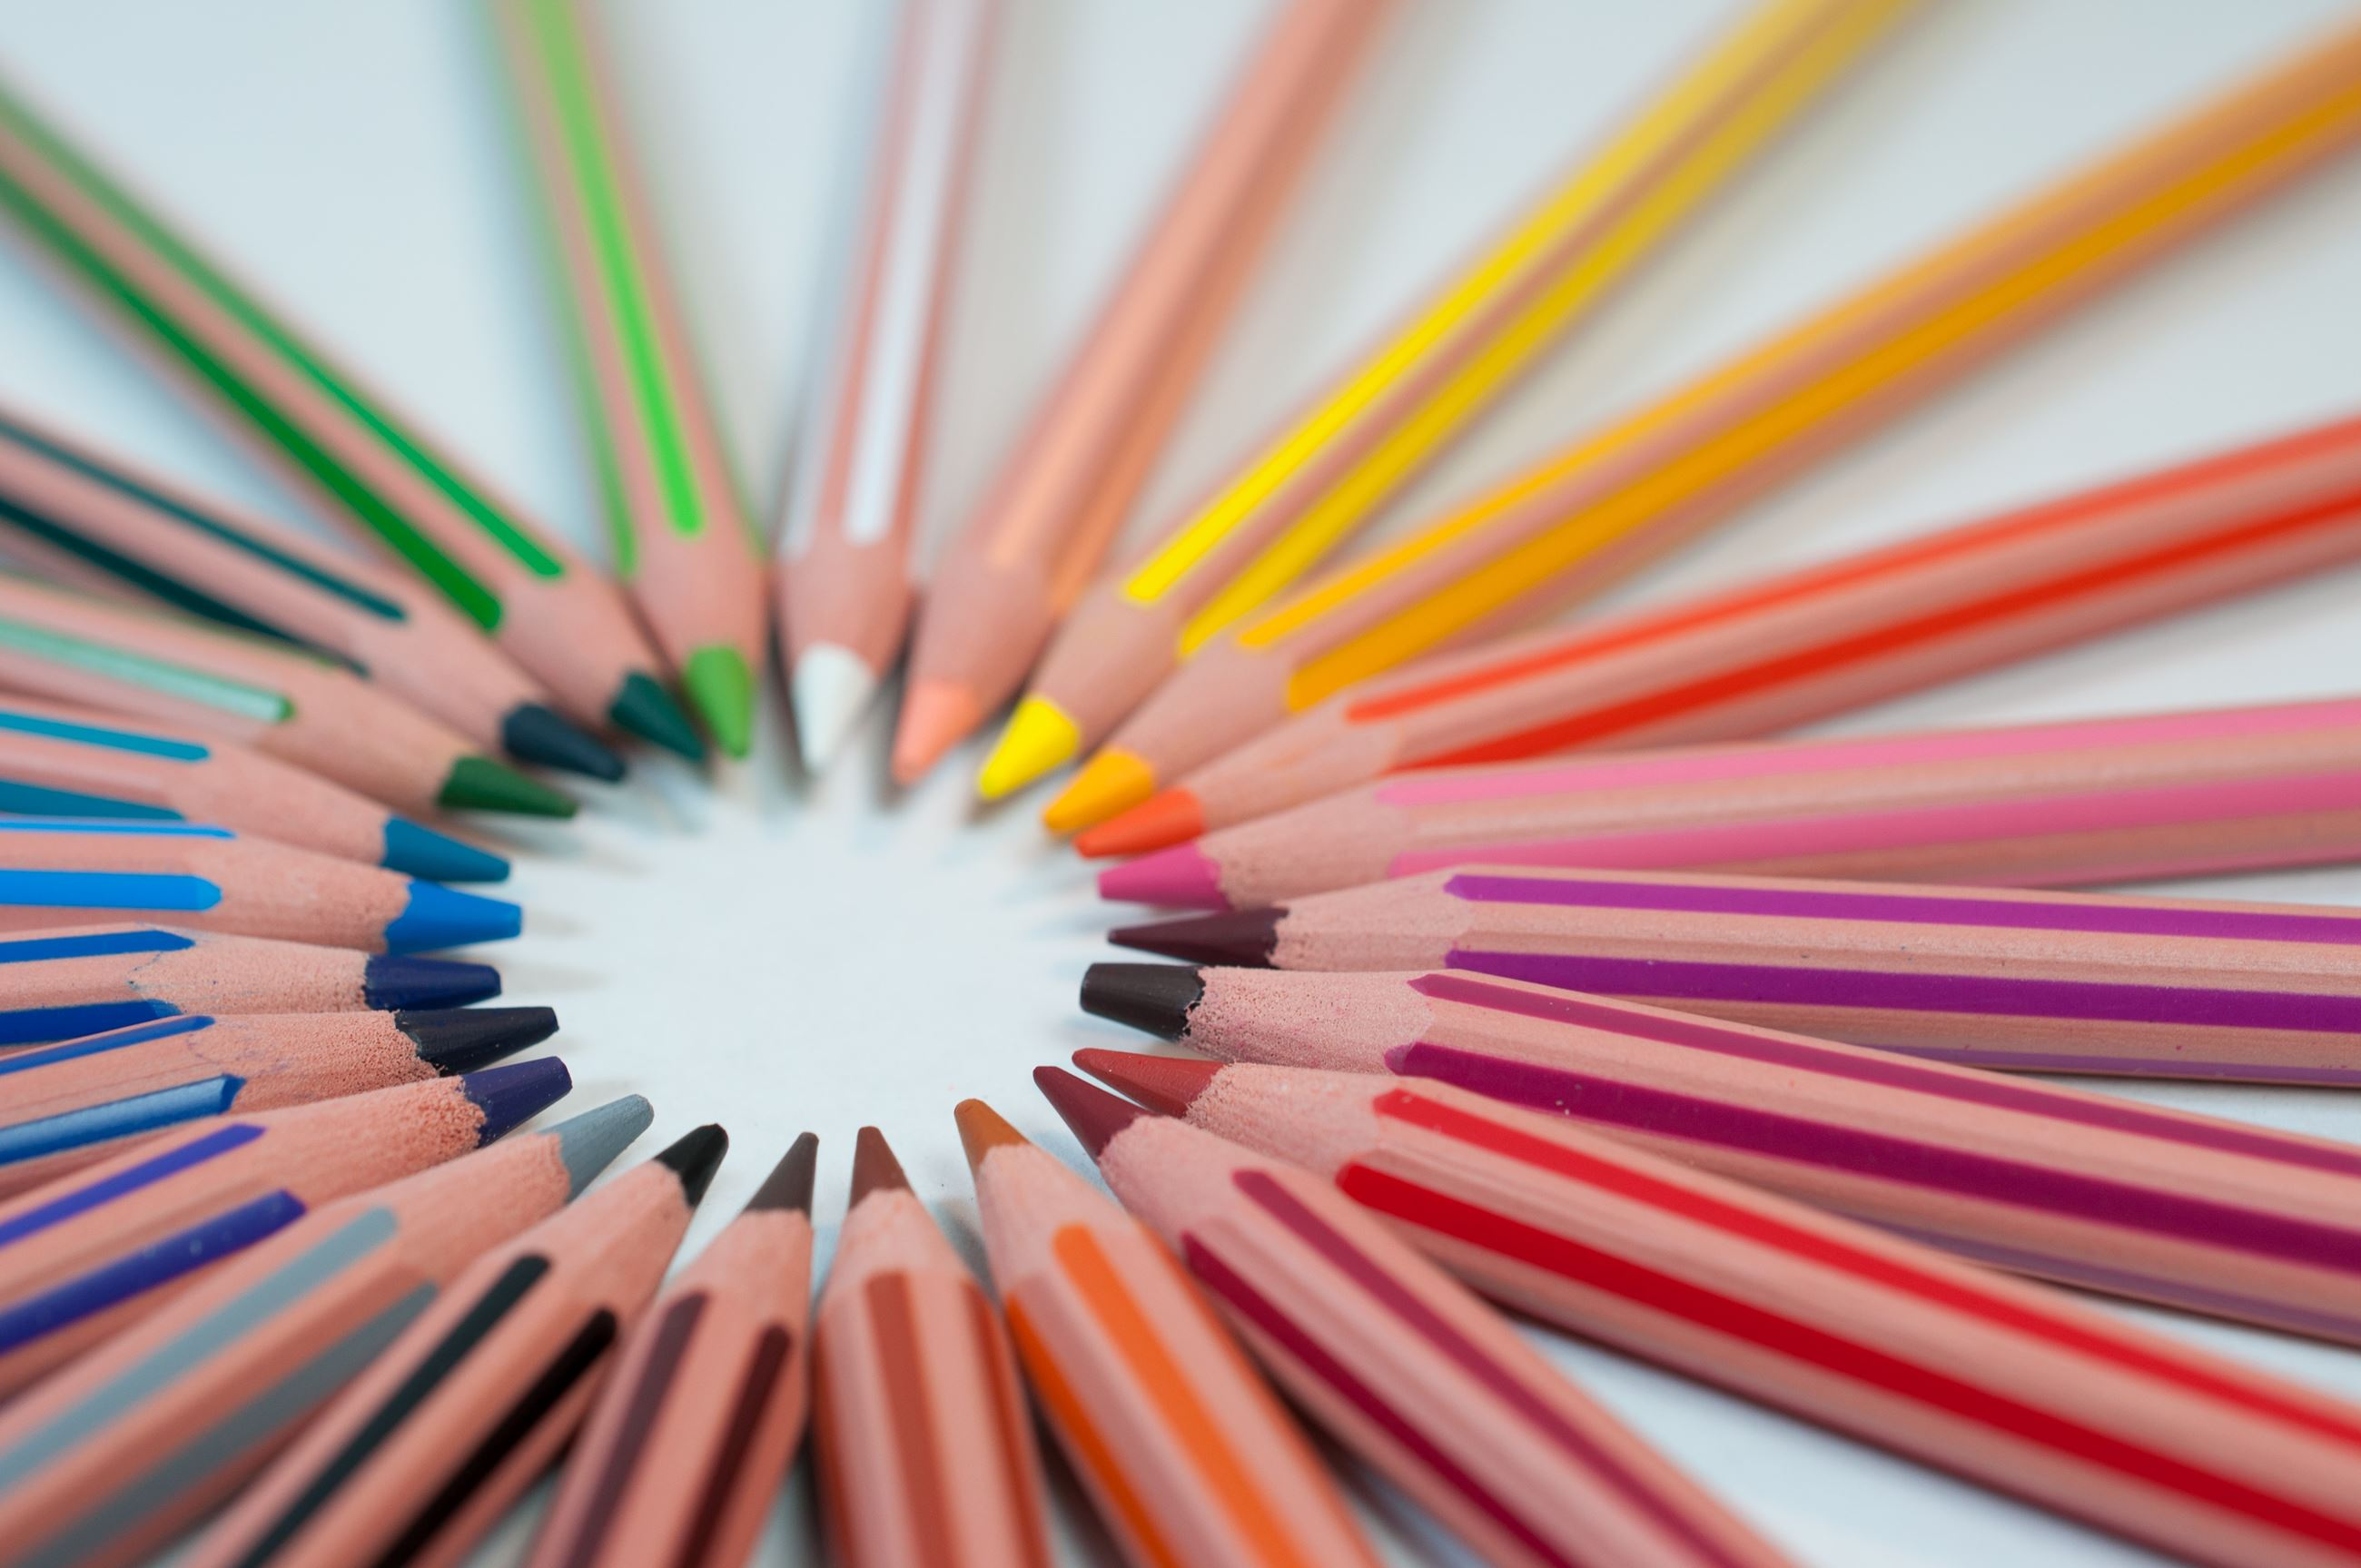 colored pencils lay out in a circle formation